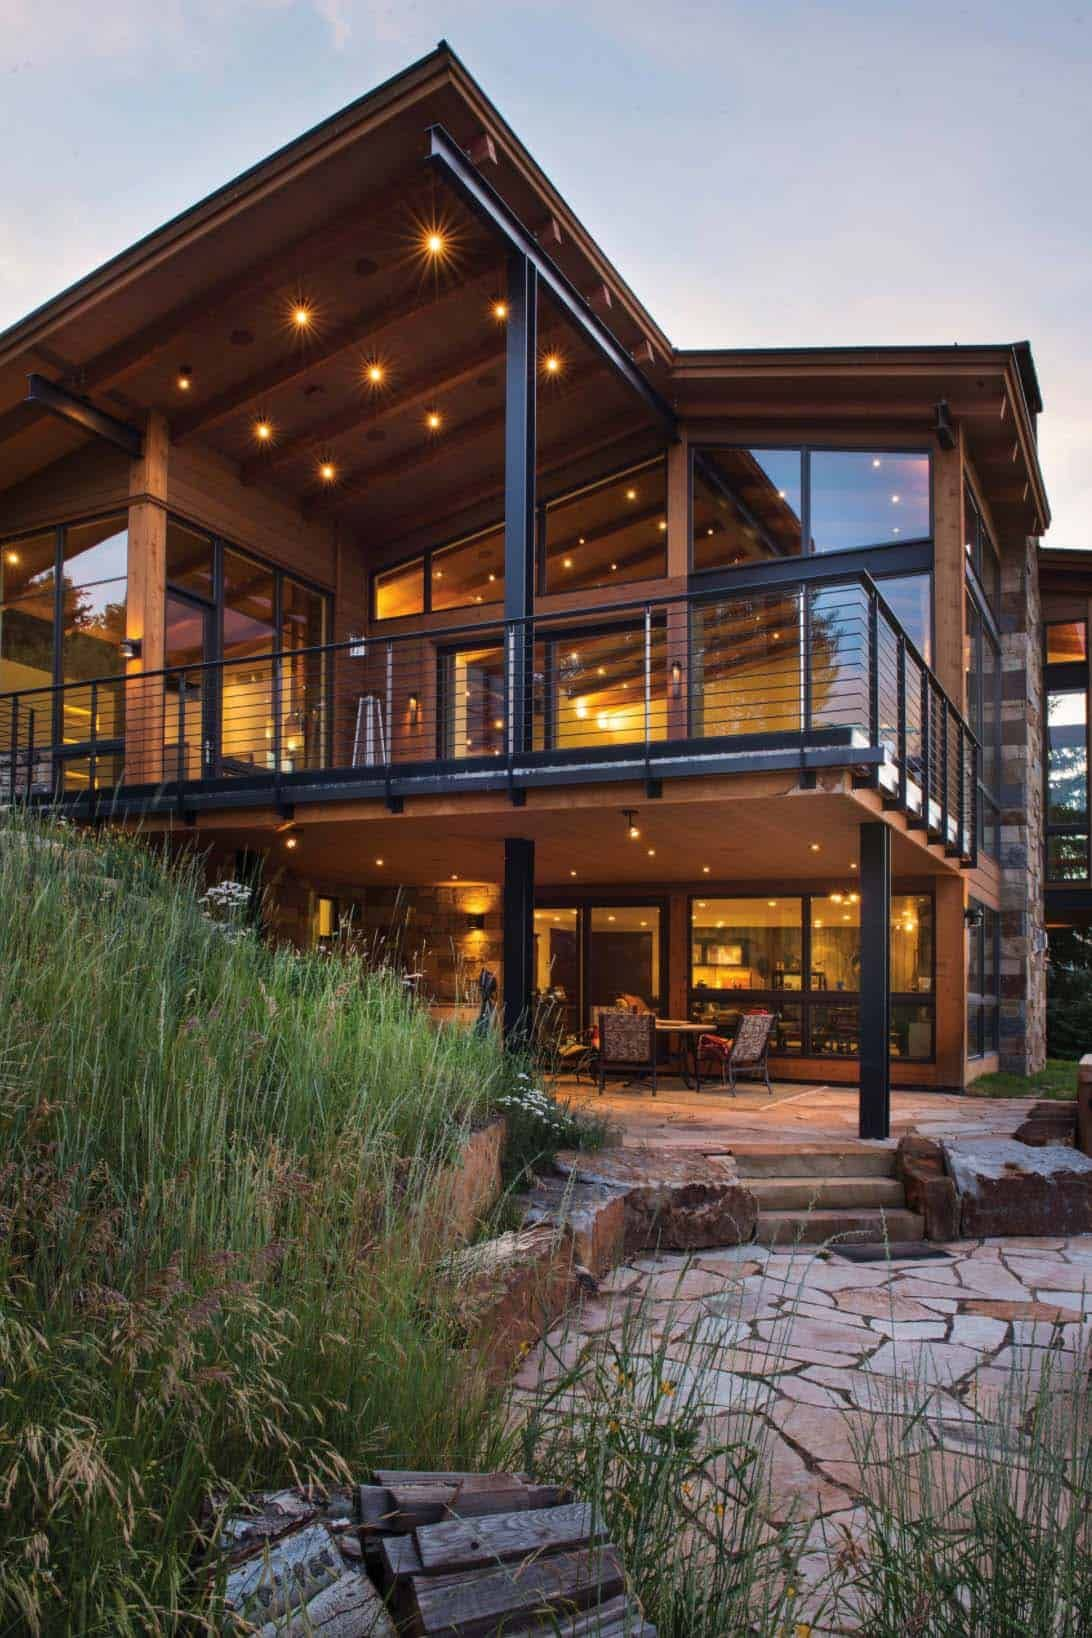 22 Modern Residences With Classy Exterior Designs: Elegant Mountain Contemporary Home In Colorado Radiates With Warmth (With Images)